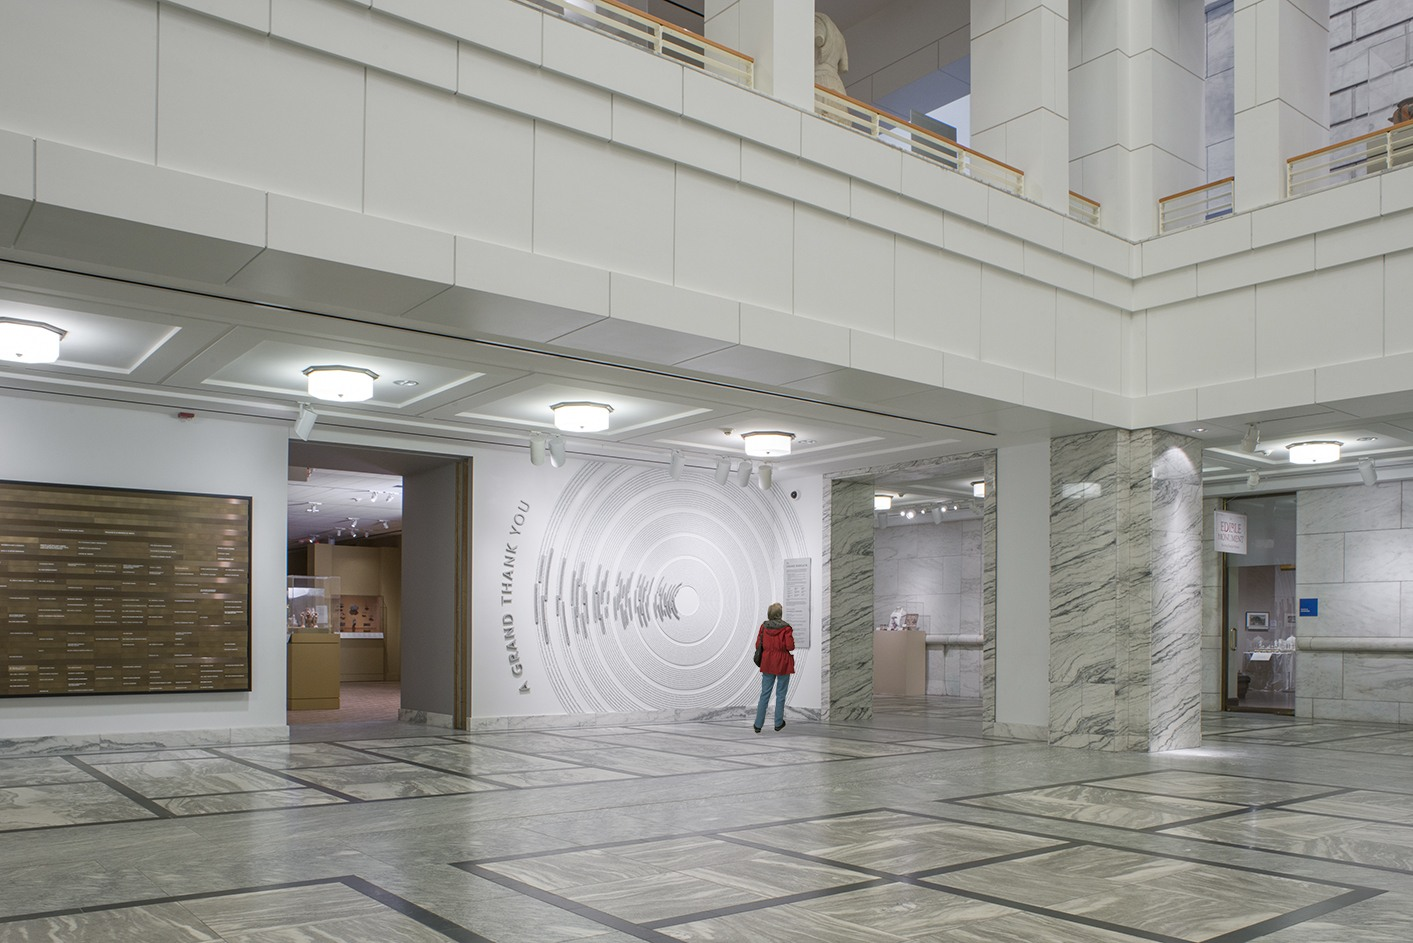 Ideation helped design a donor wall for the Detroit Institute of Art